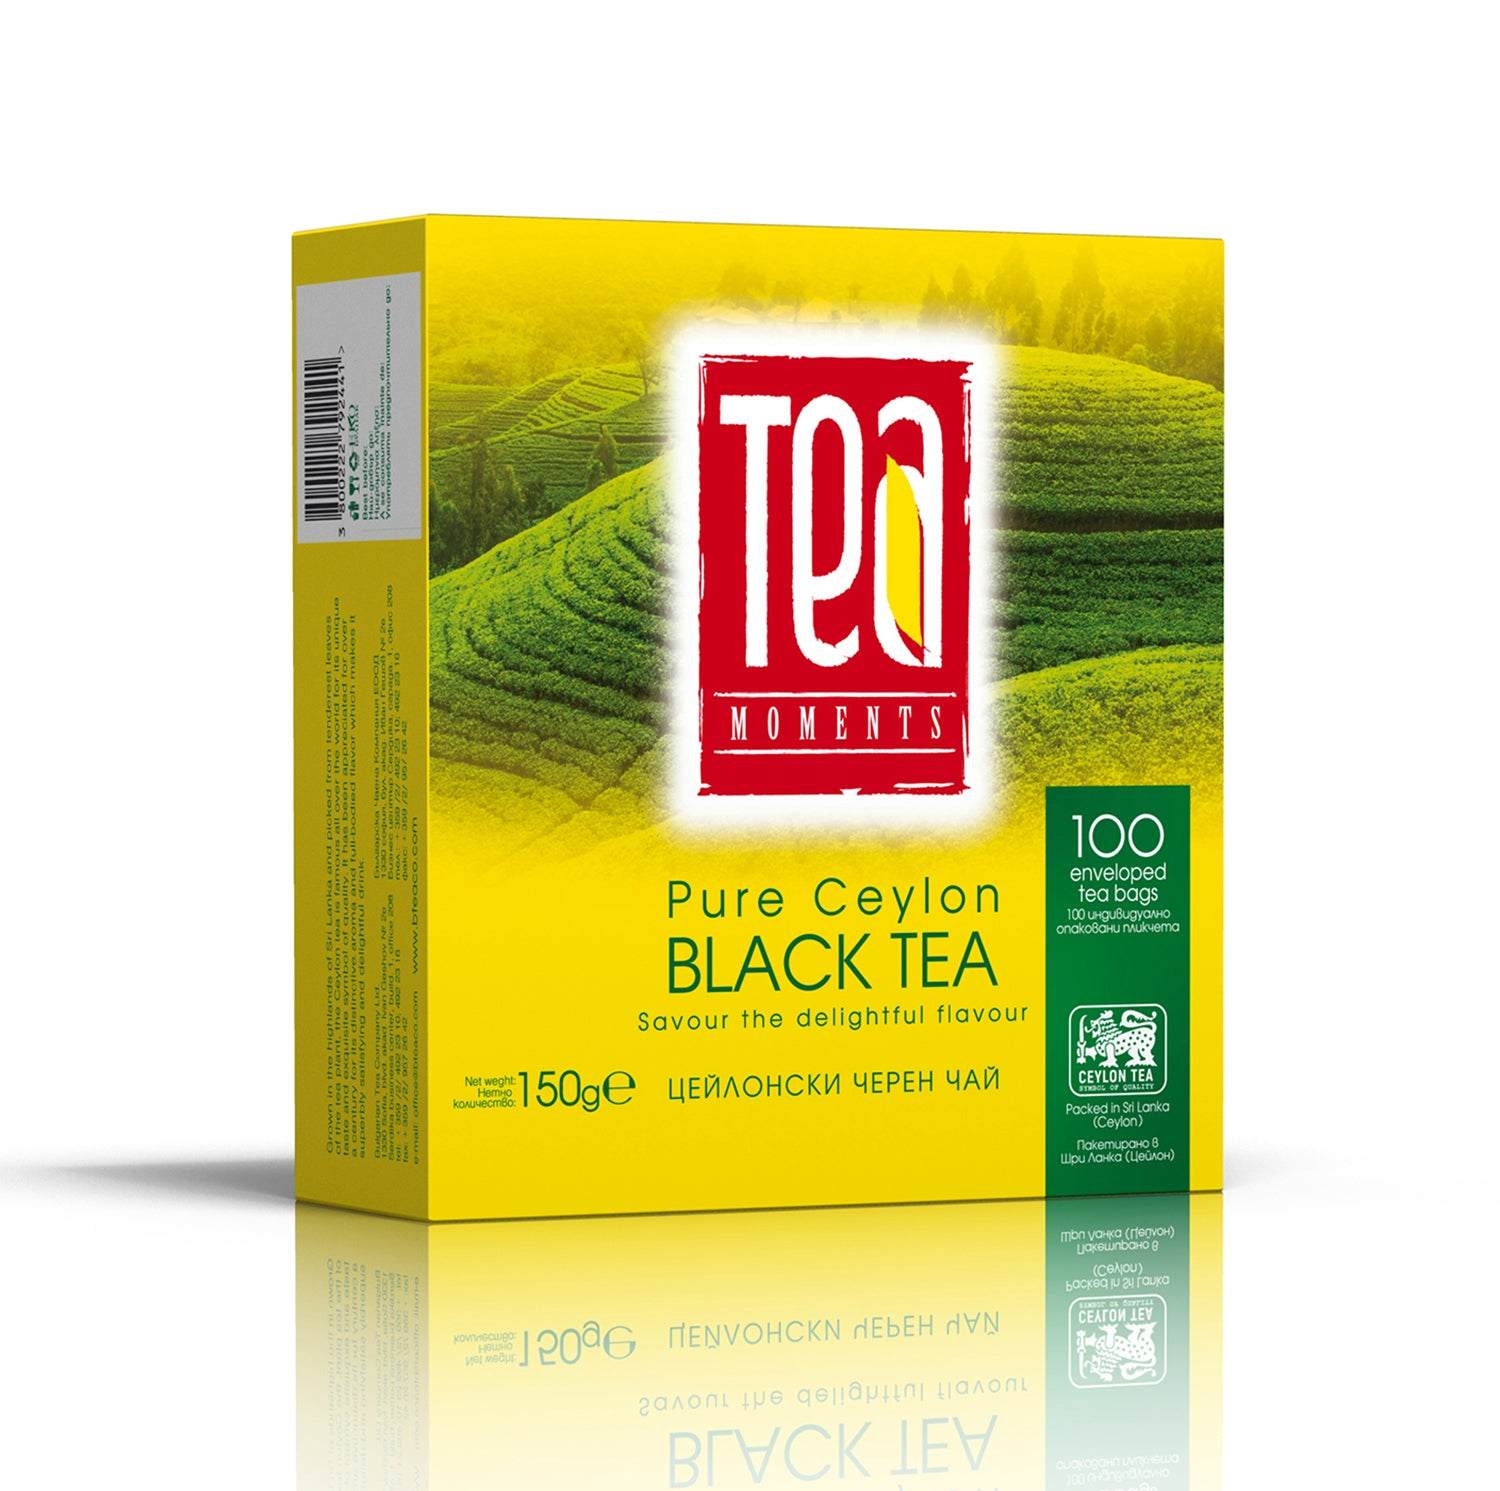 Ceylon Black Tea 100 Bags Pack - Kuker Shop